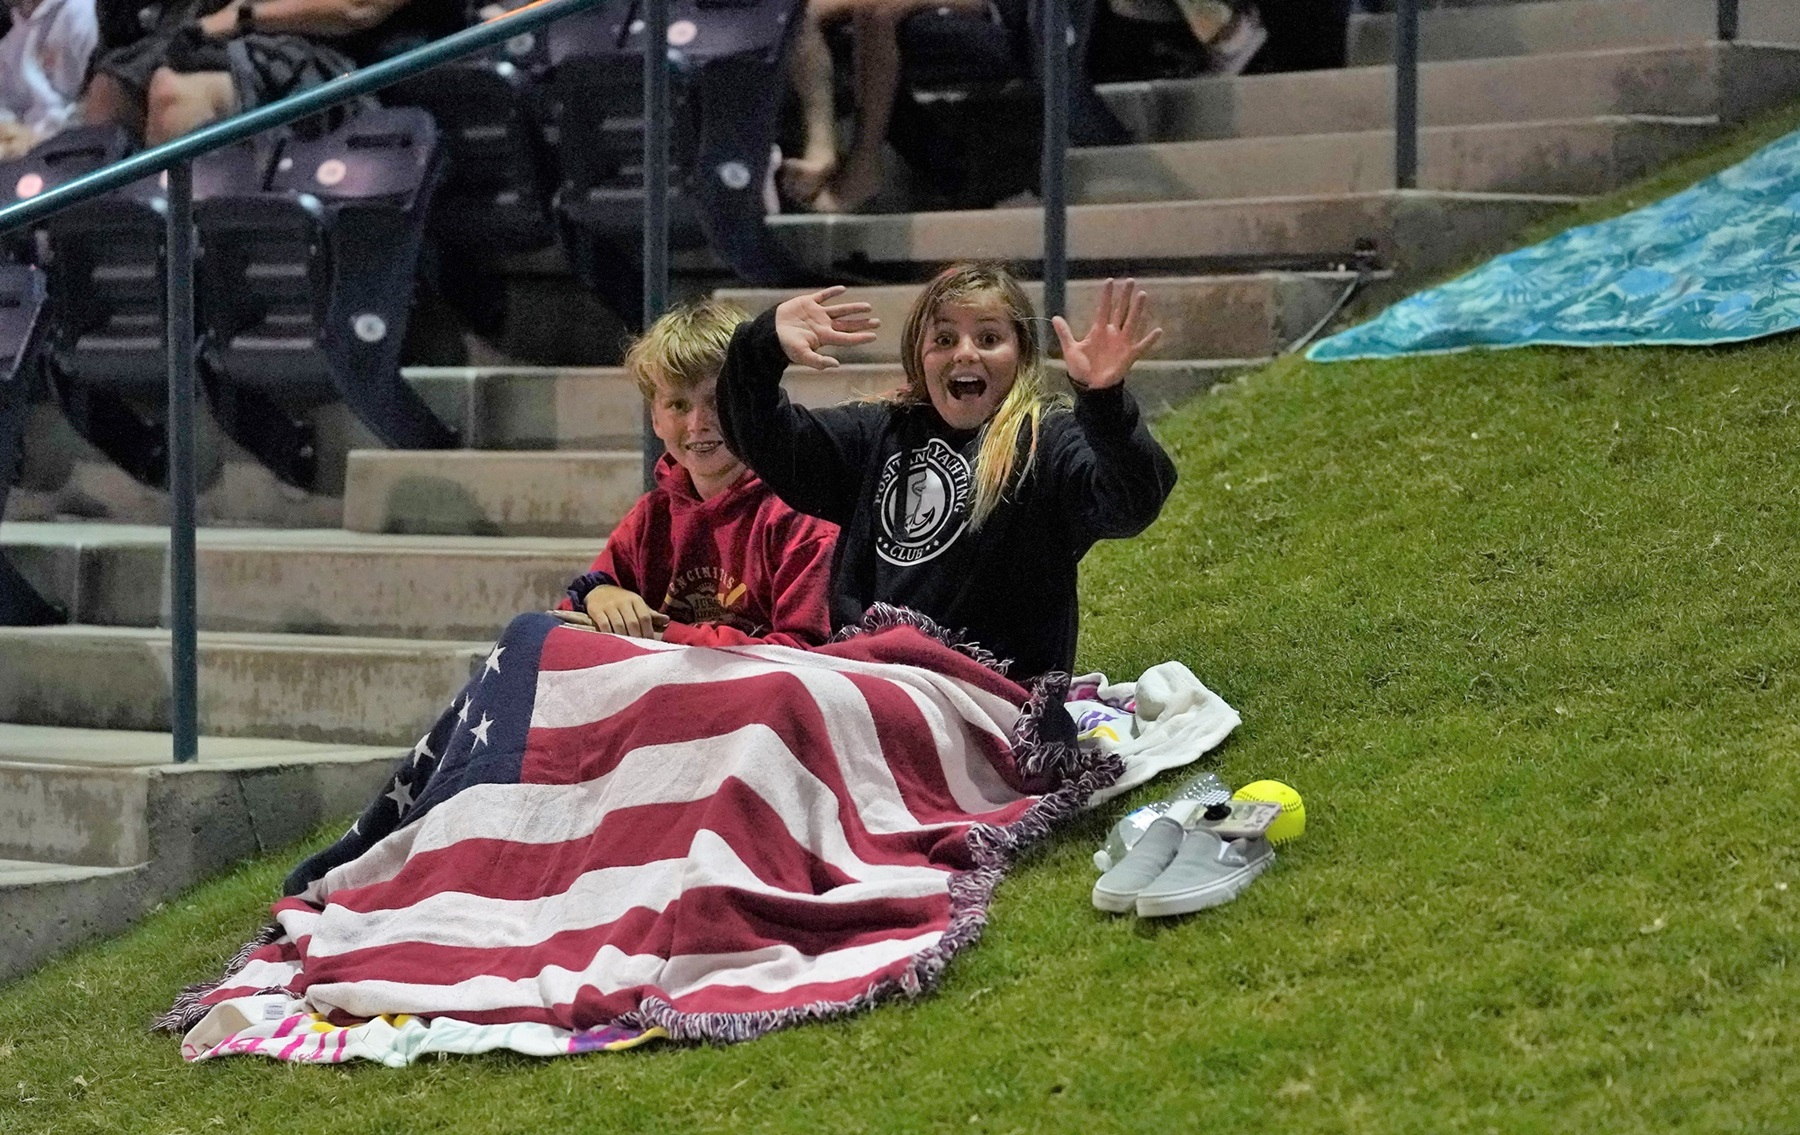 A chilly southern California night didn't stop USA fans